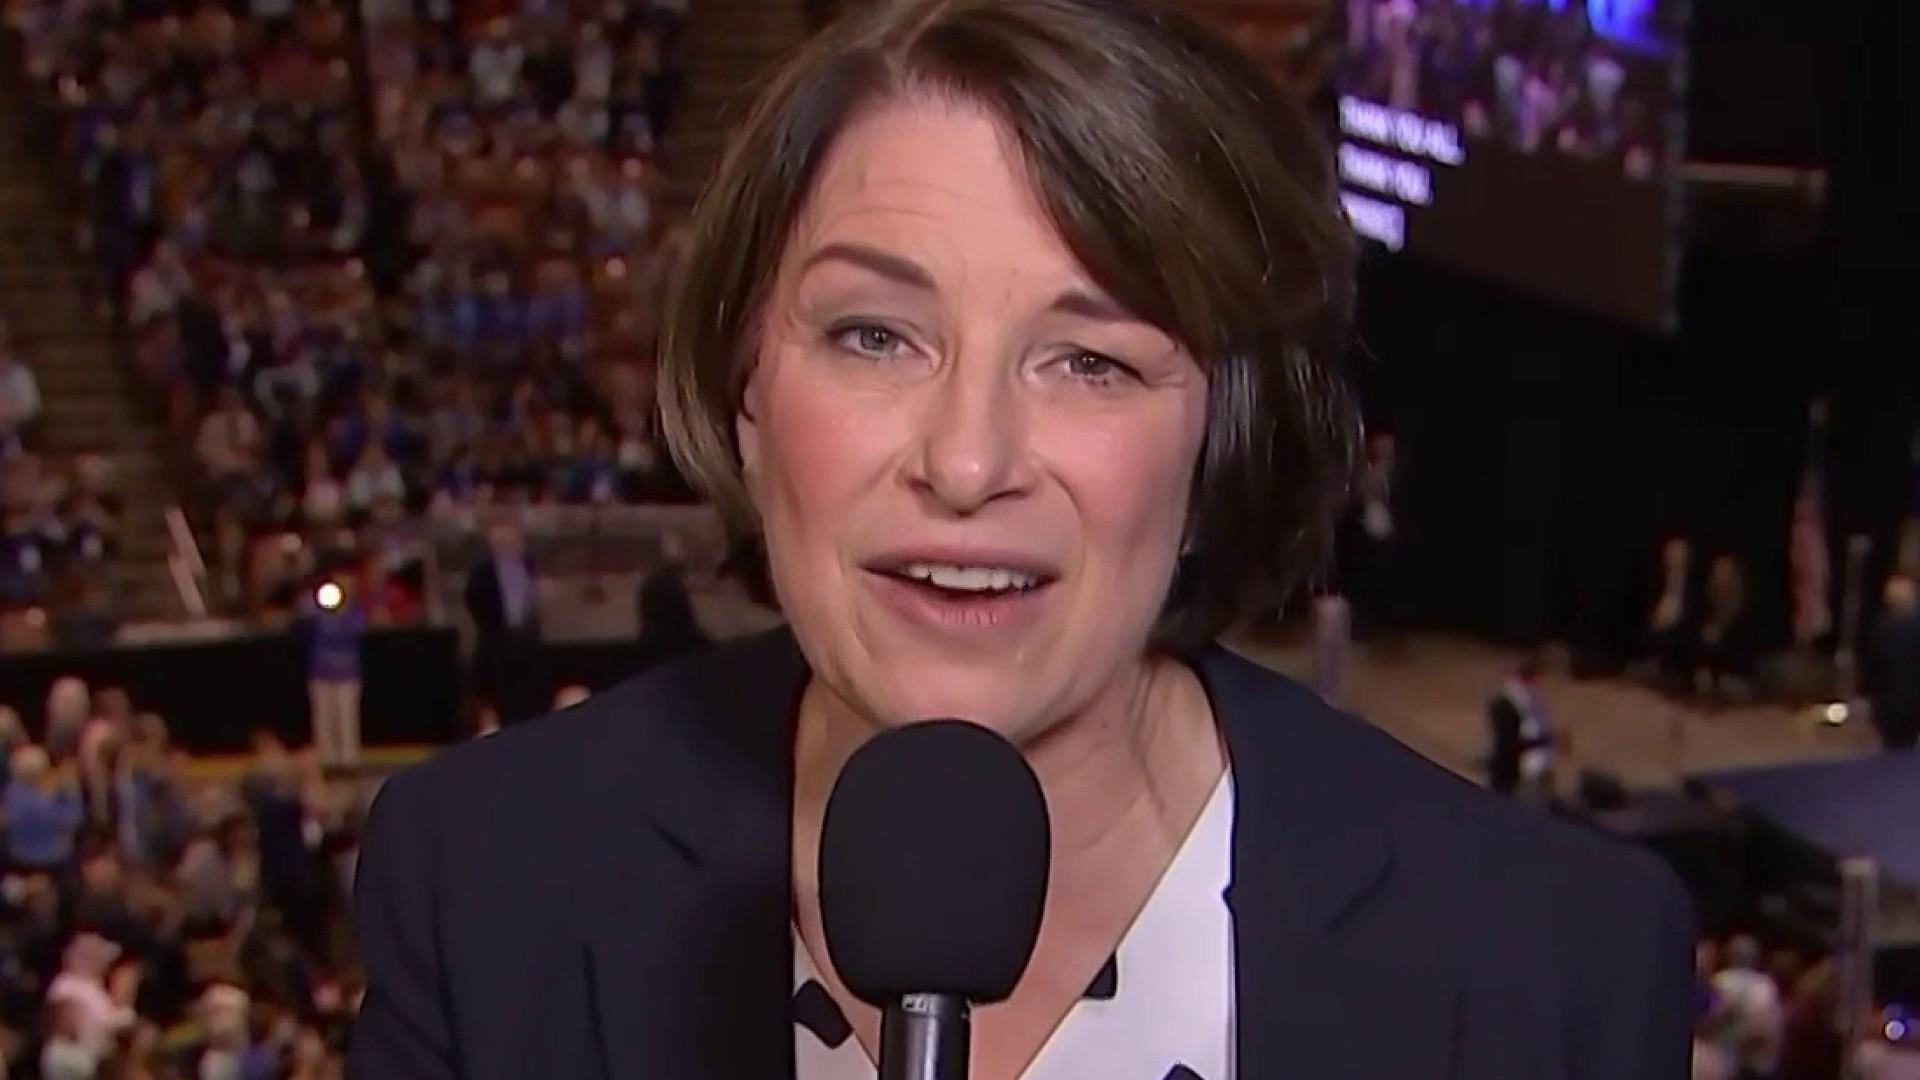 Amy Klobuchar to Dems: 'We don't just want to win, we want to win big'